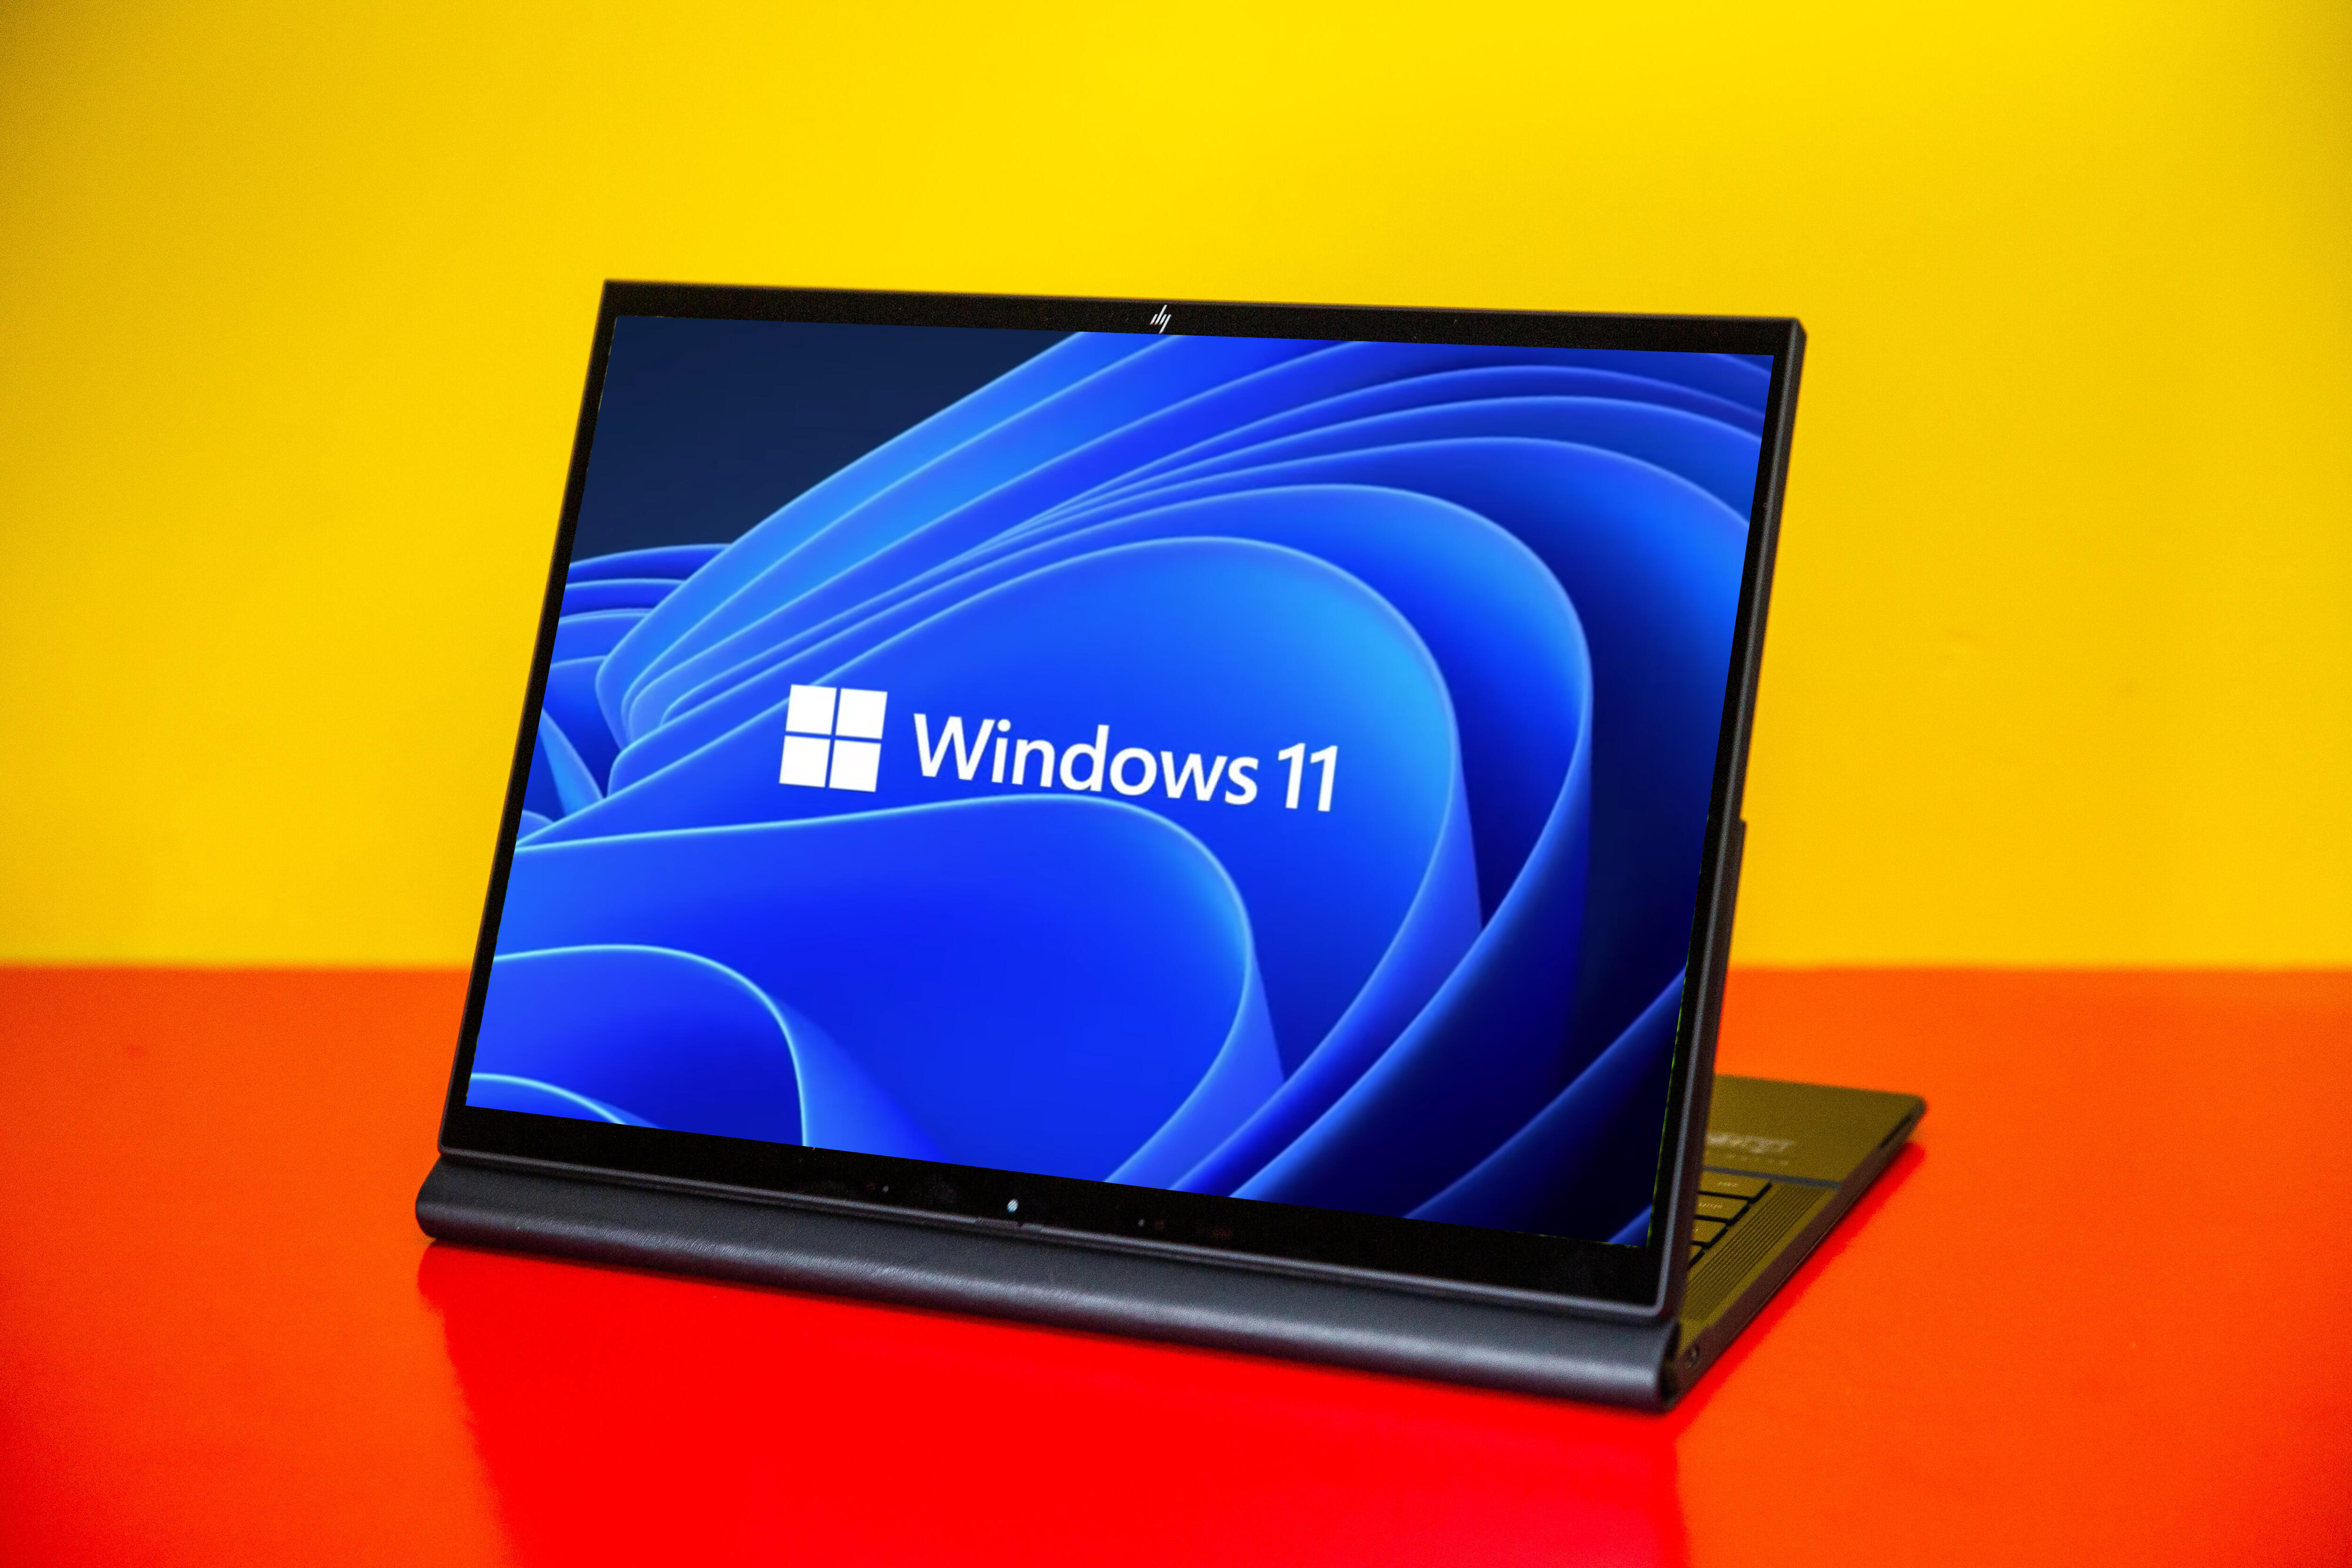 Microsoft launched Windows 11. Now what? Essential info about the new OS     - CNET